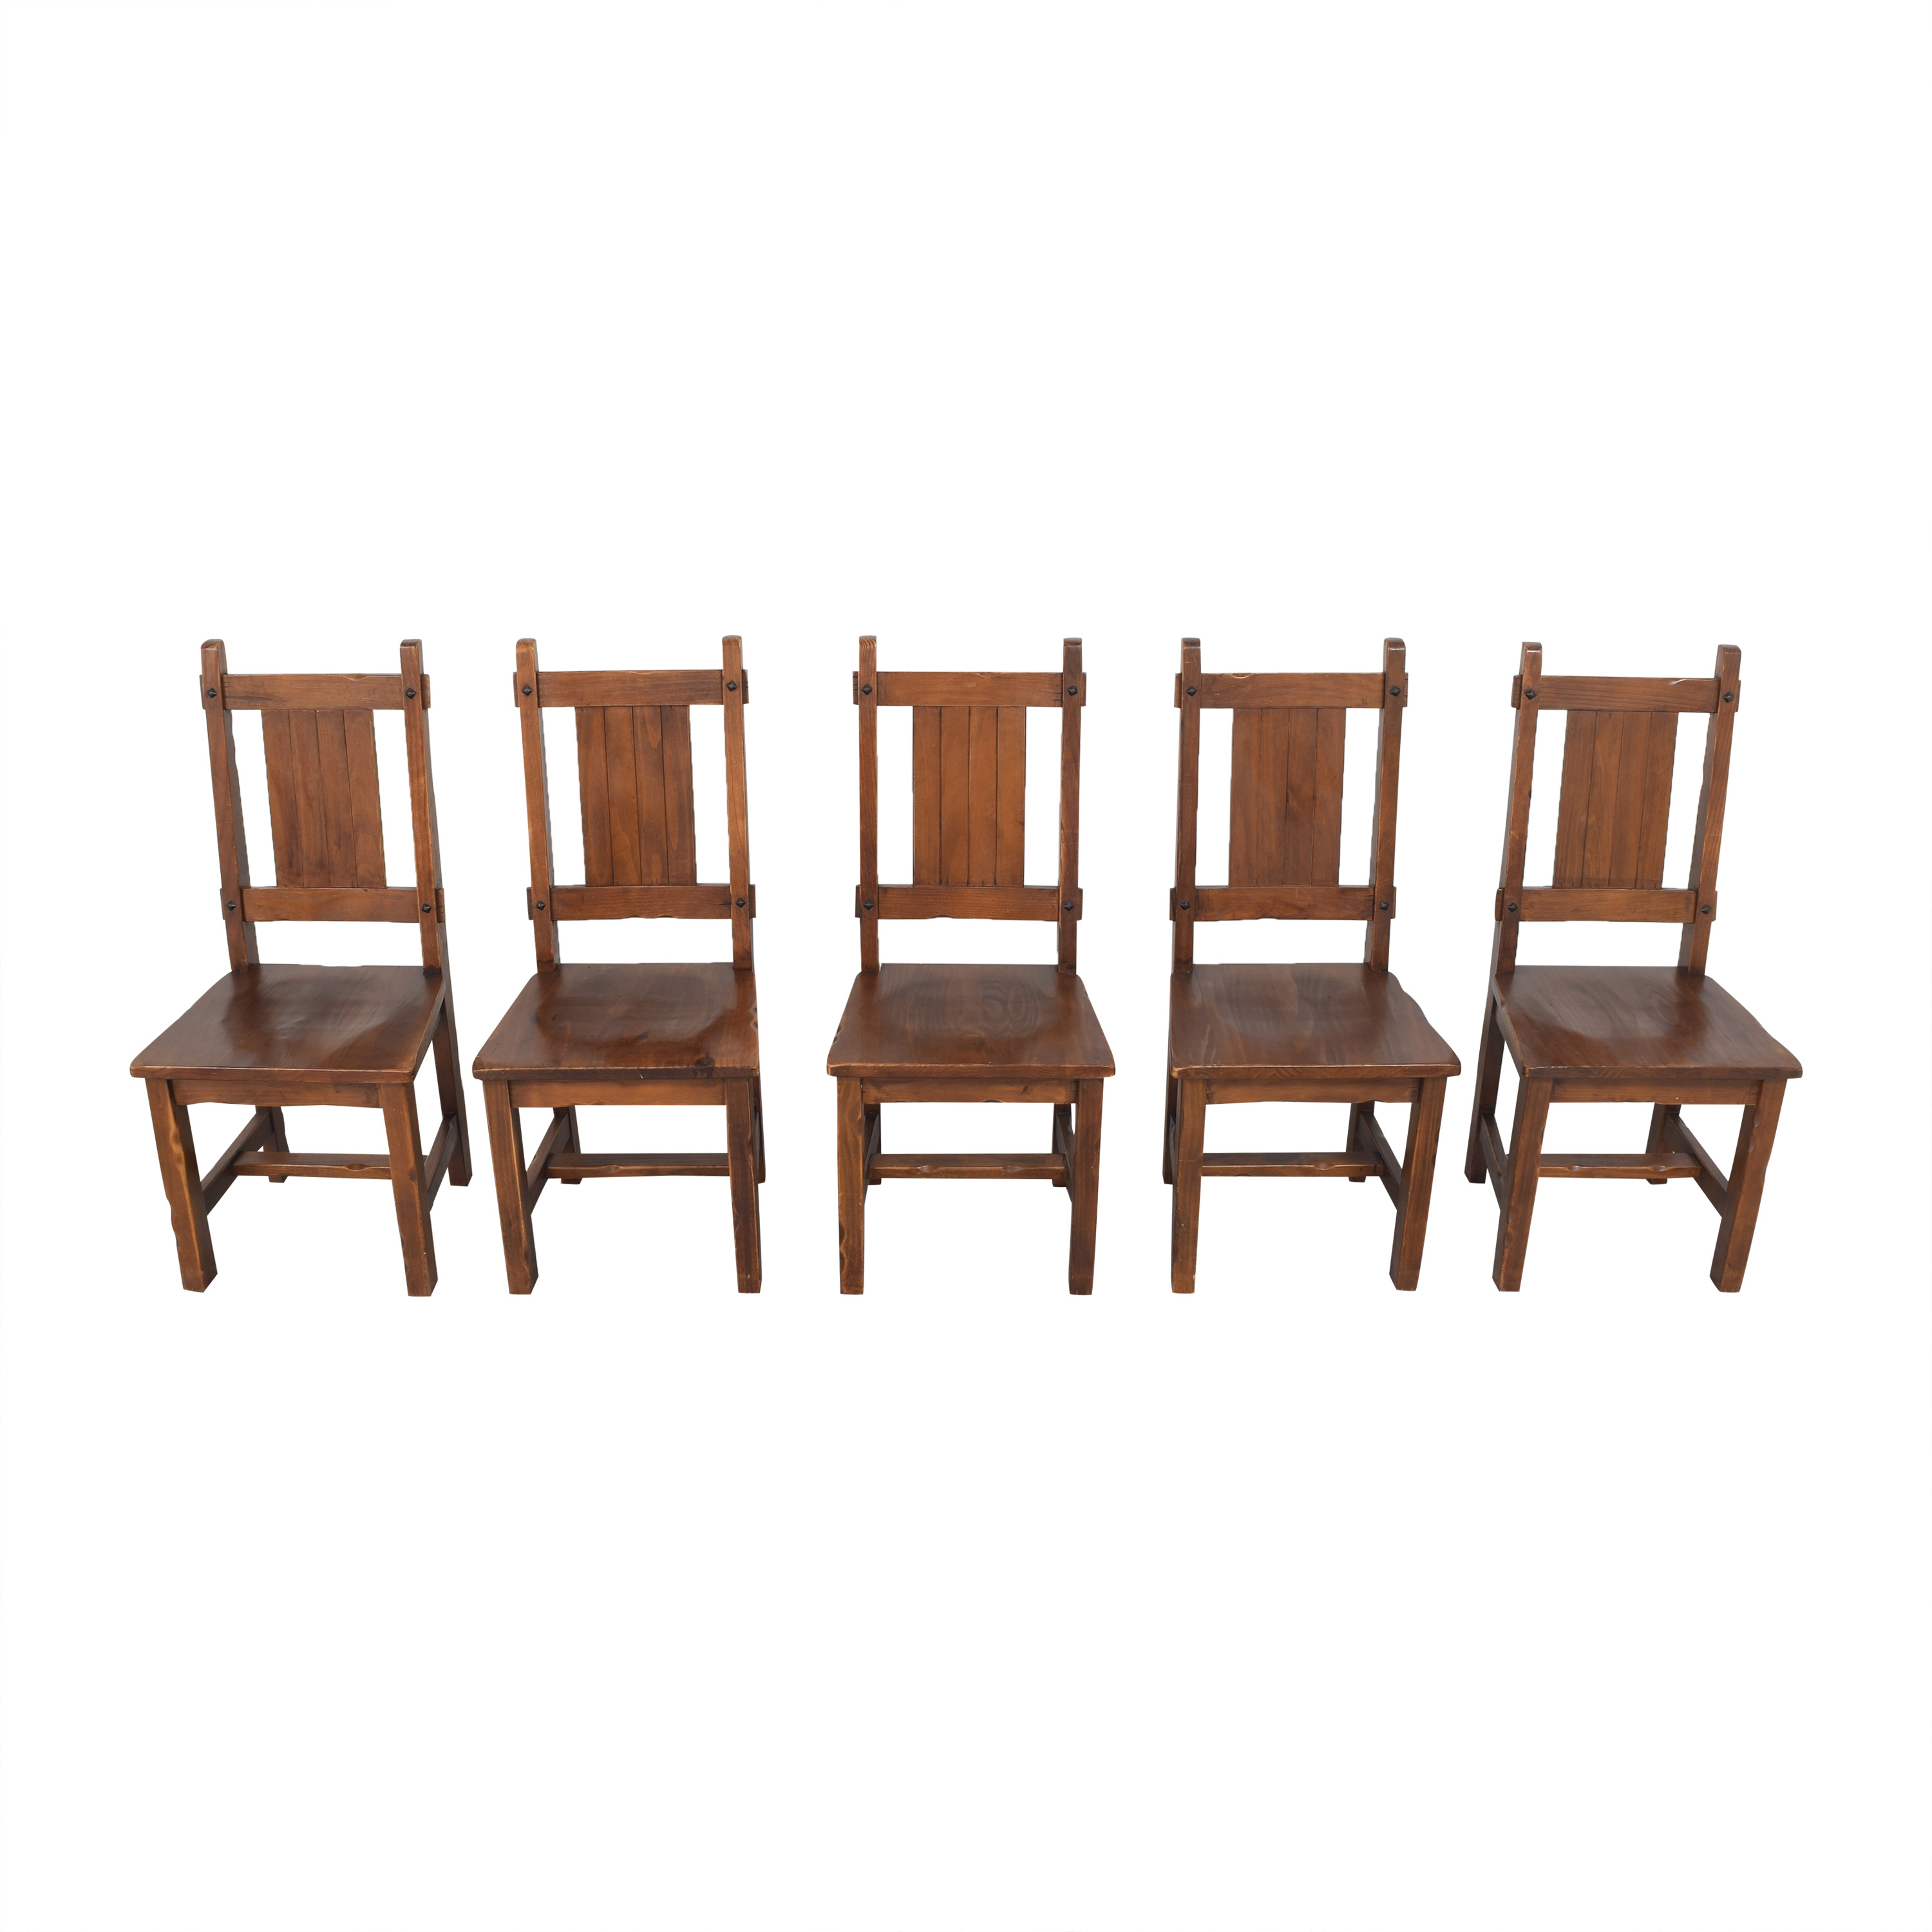 buy Pier 1 Pier 1 Rustic Dining Chairs online